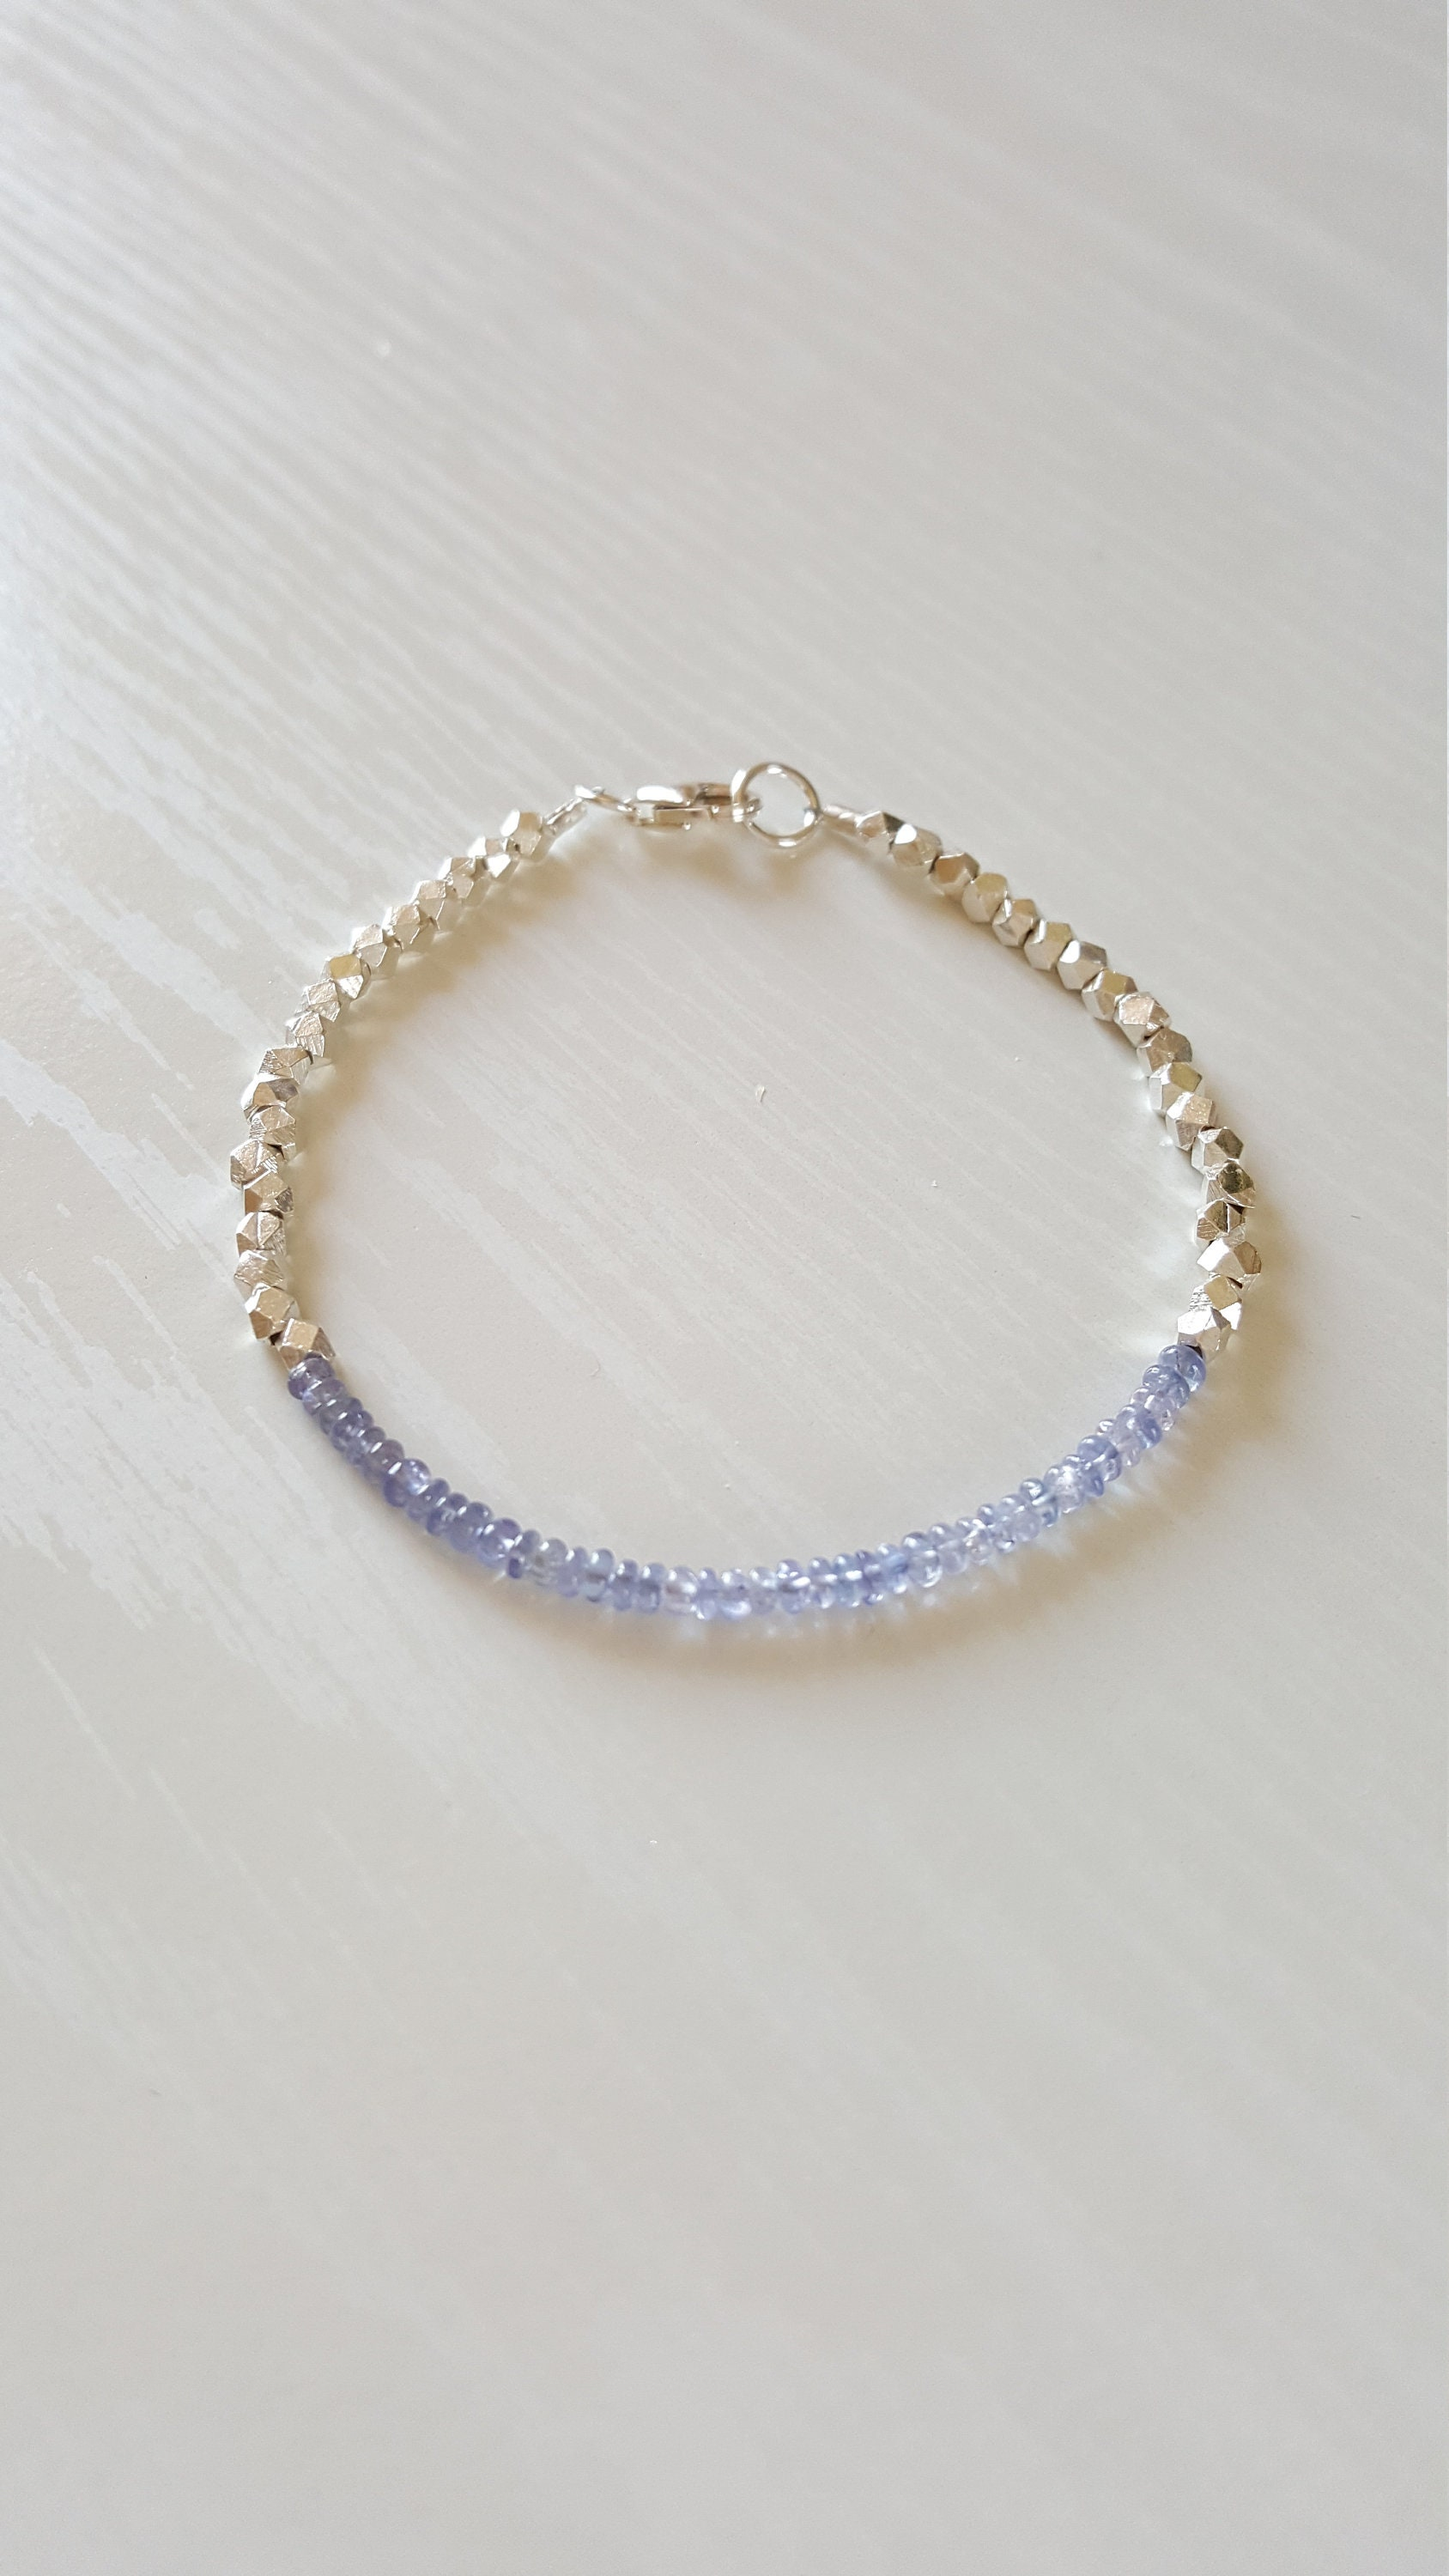 serenity products individuality celebrate to leather tanzanite bracelet